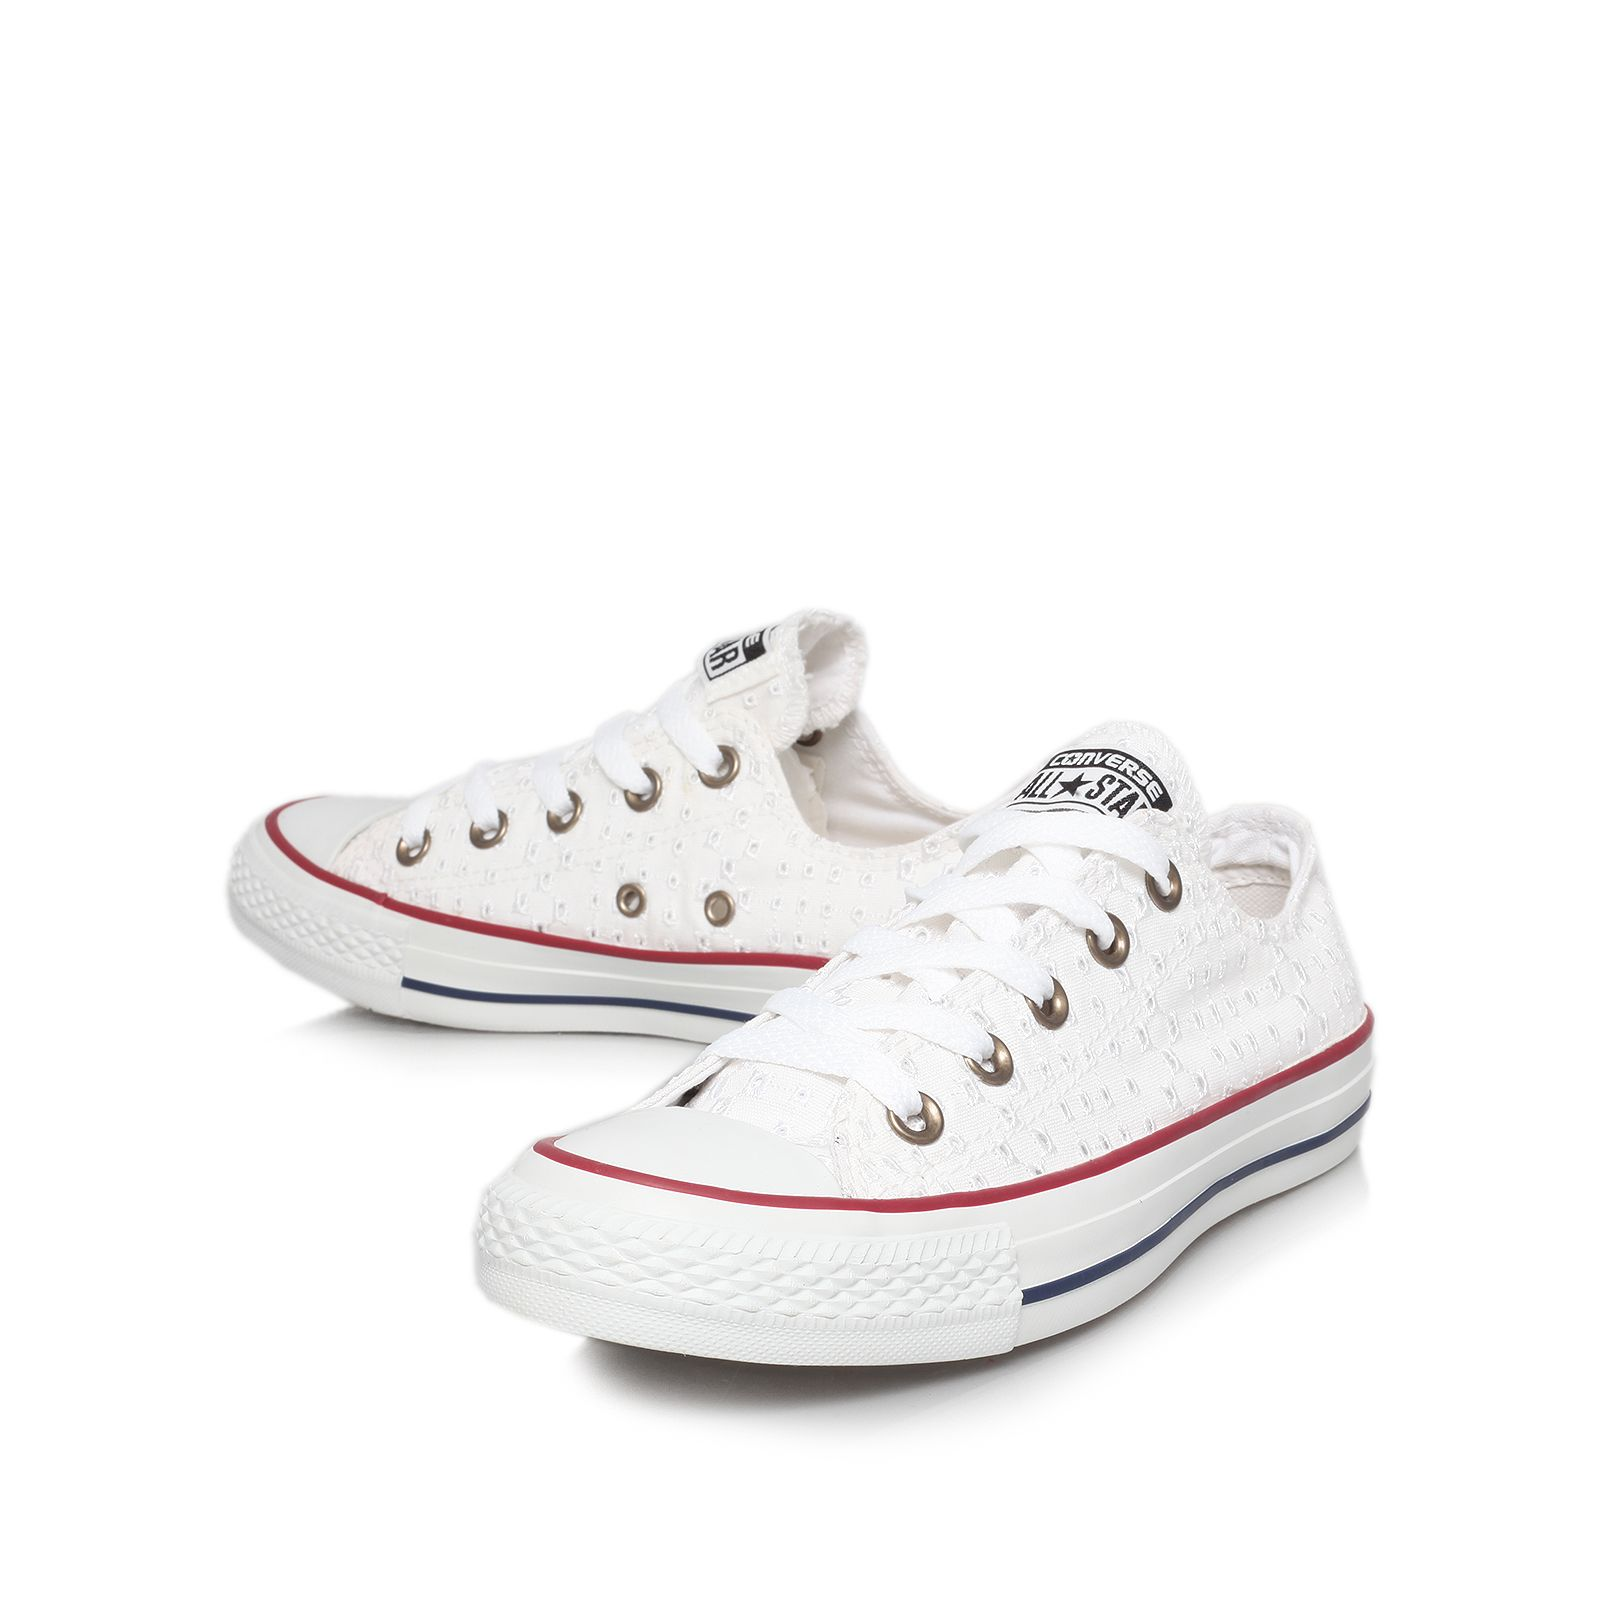 Ct eyelet flat lace up trainers